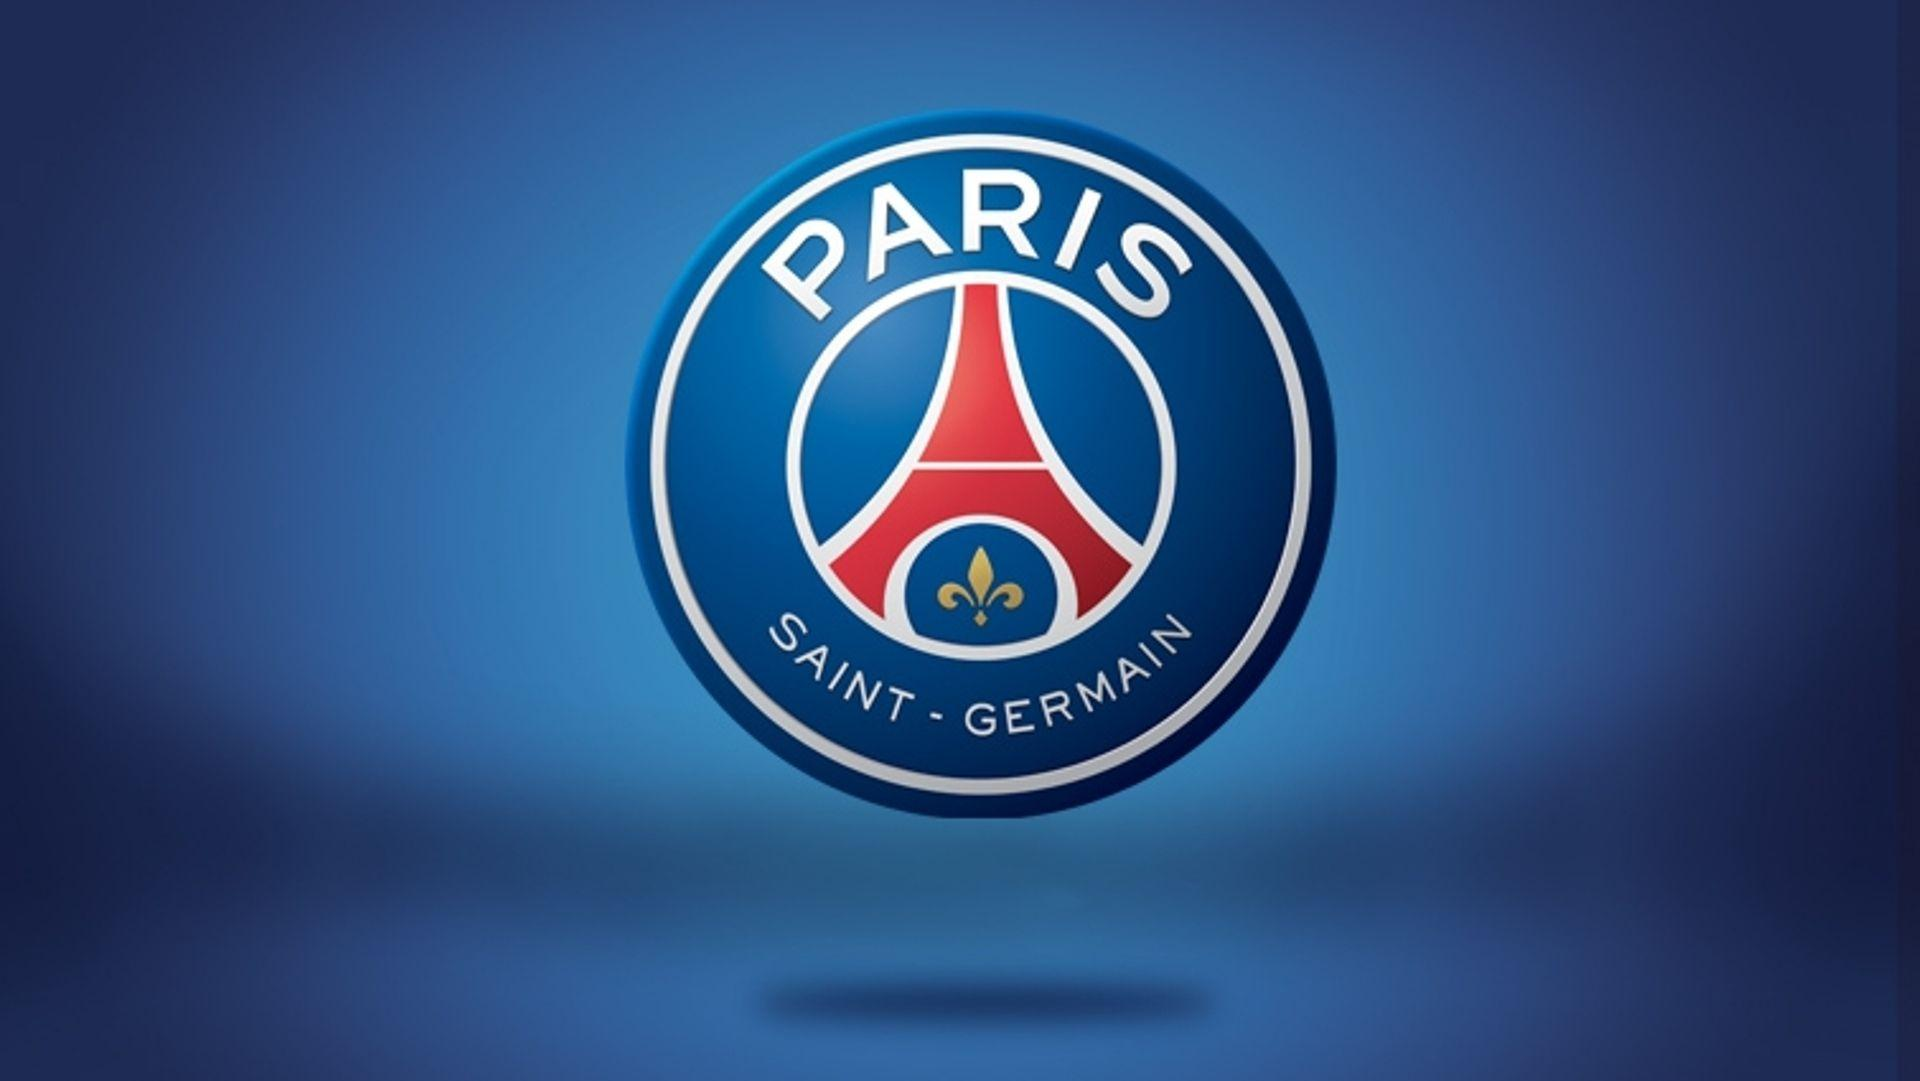 PSG Logo Wallpapers - Wallpaper Cave